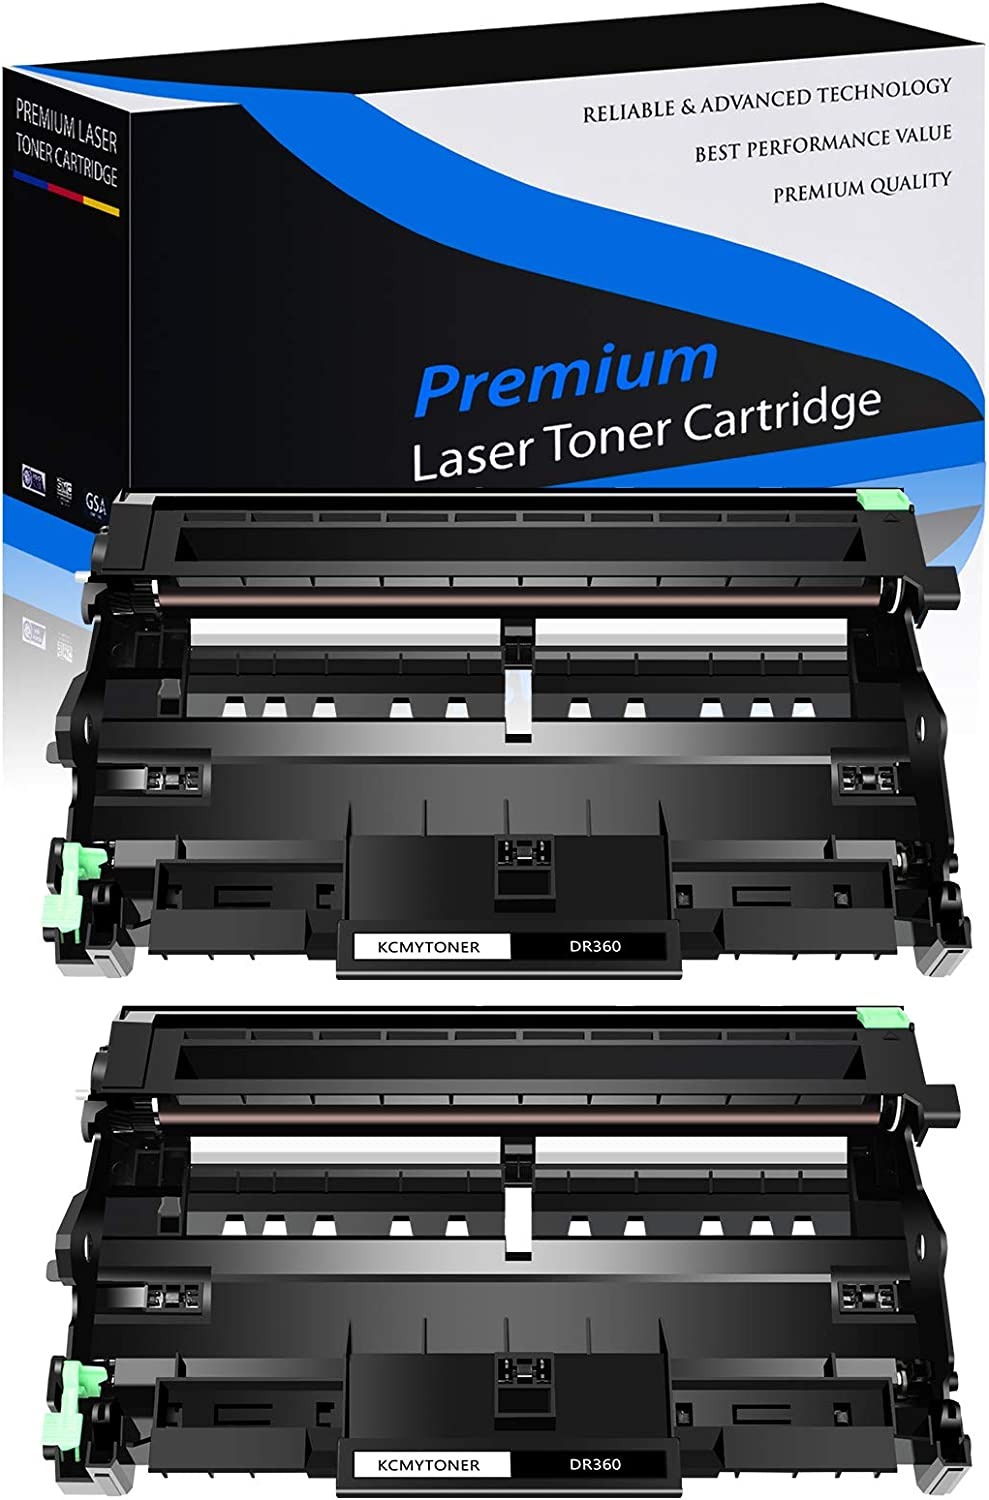 KCMYTONER 2 Pack New Replacement DR360 Drum Unit Compatible for Brother DCP-7030 DCP-7040 HL-2140 HL-2150N MFC-7340 MFC-7345DN Printer